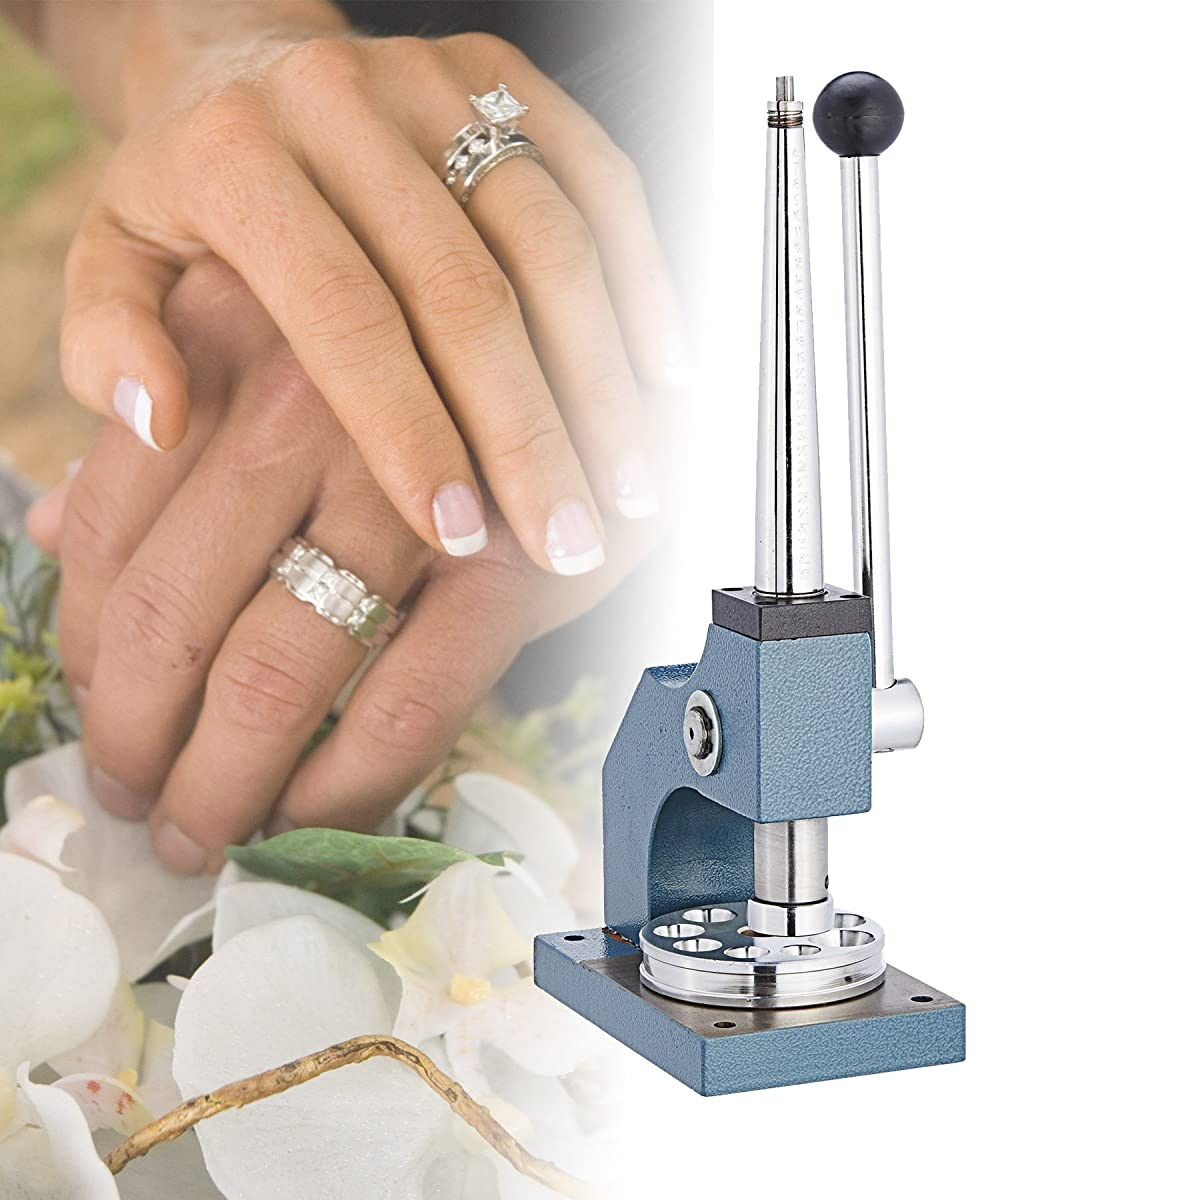 Tek Motion 2in1 Ring Stretcher / Enlarger & Reducer Size Adjustment Jewelry Making Tool